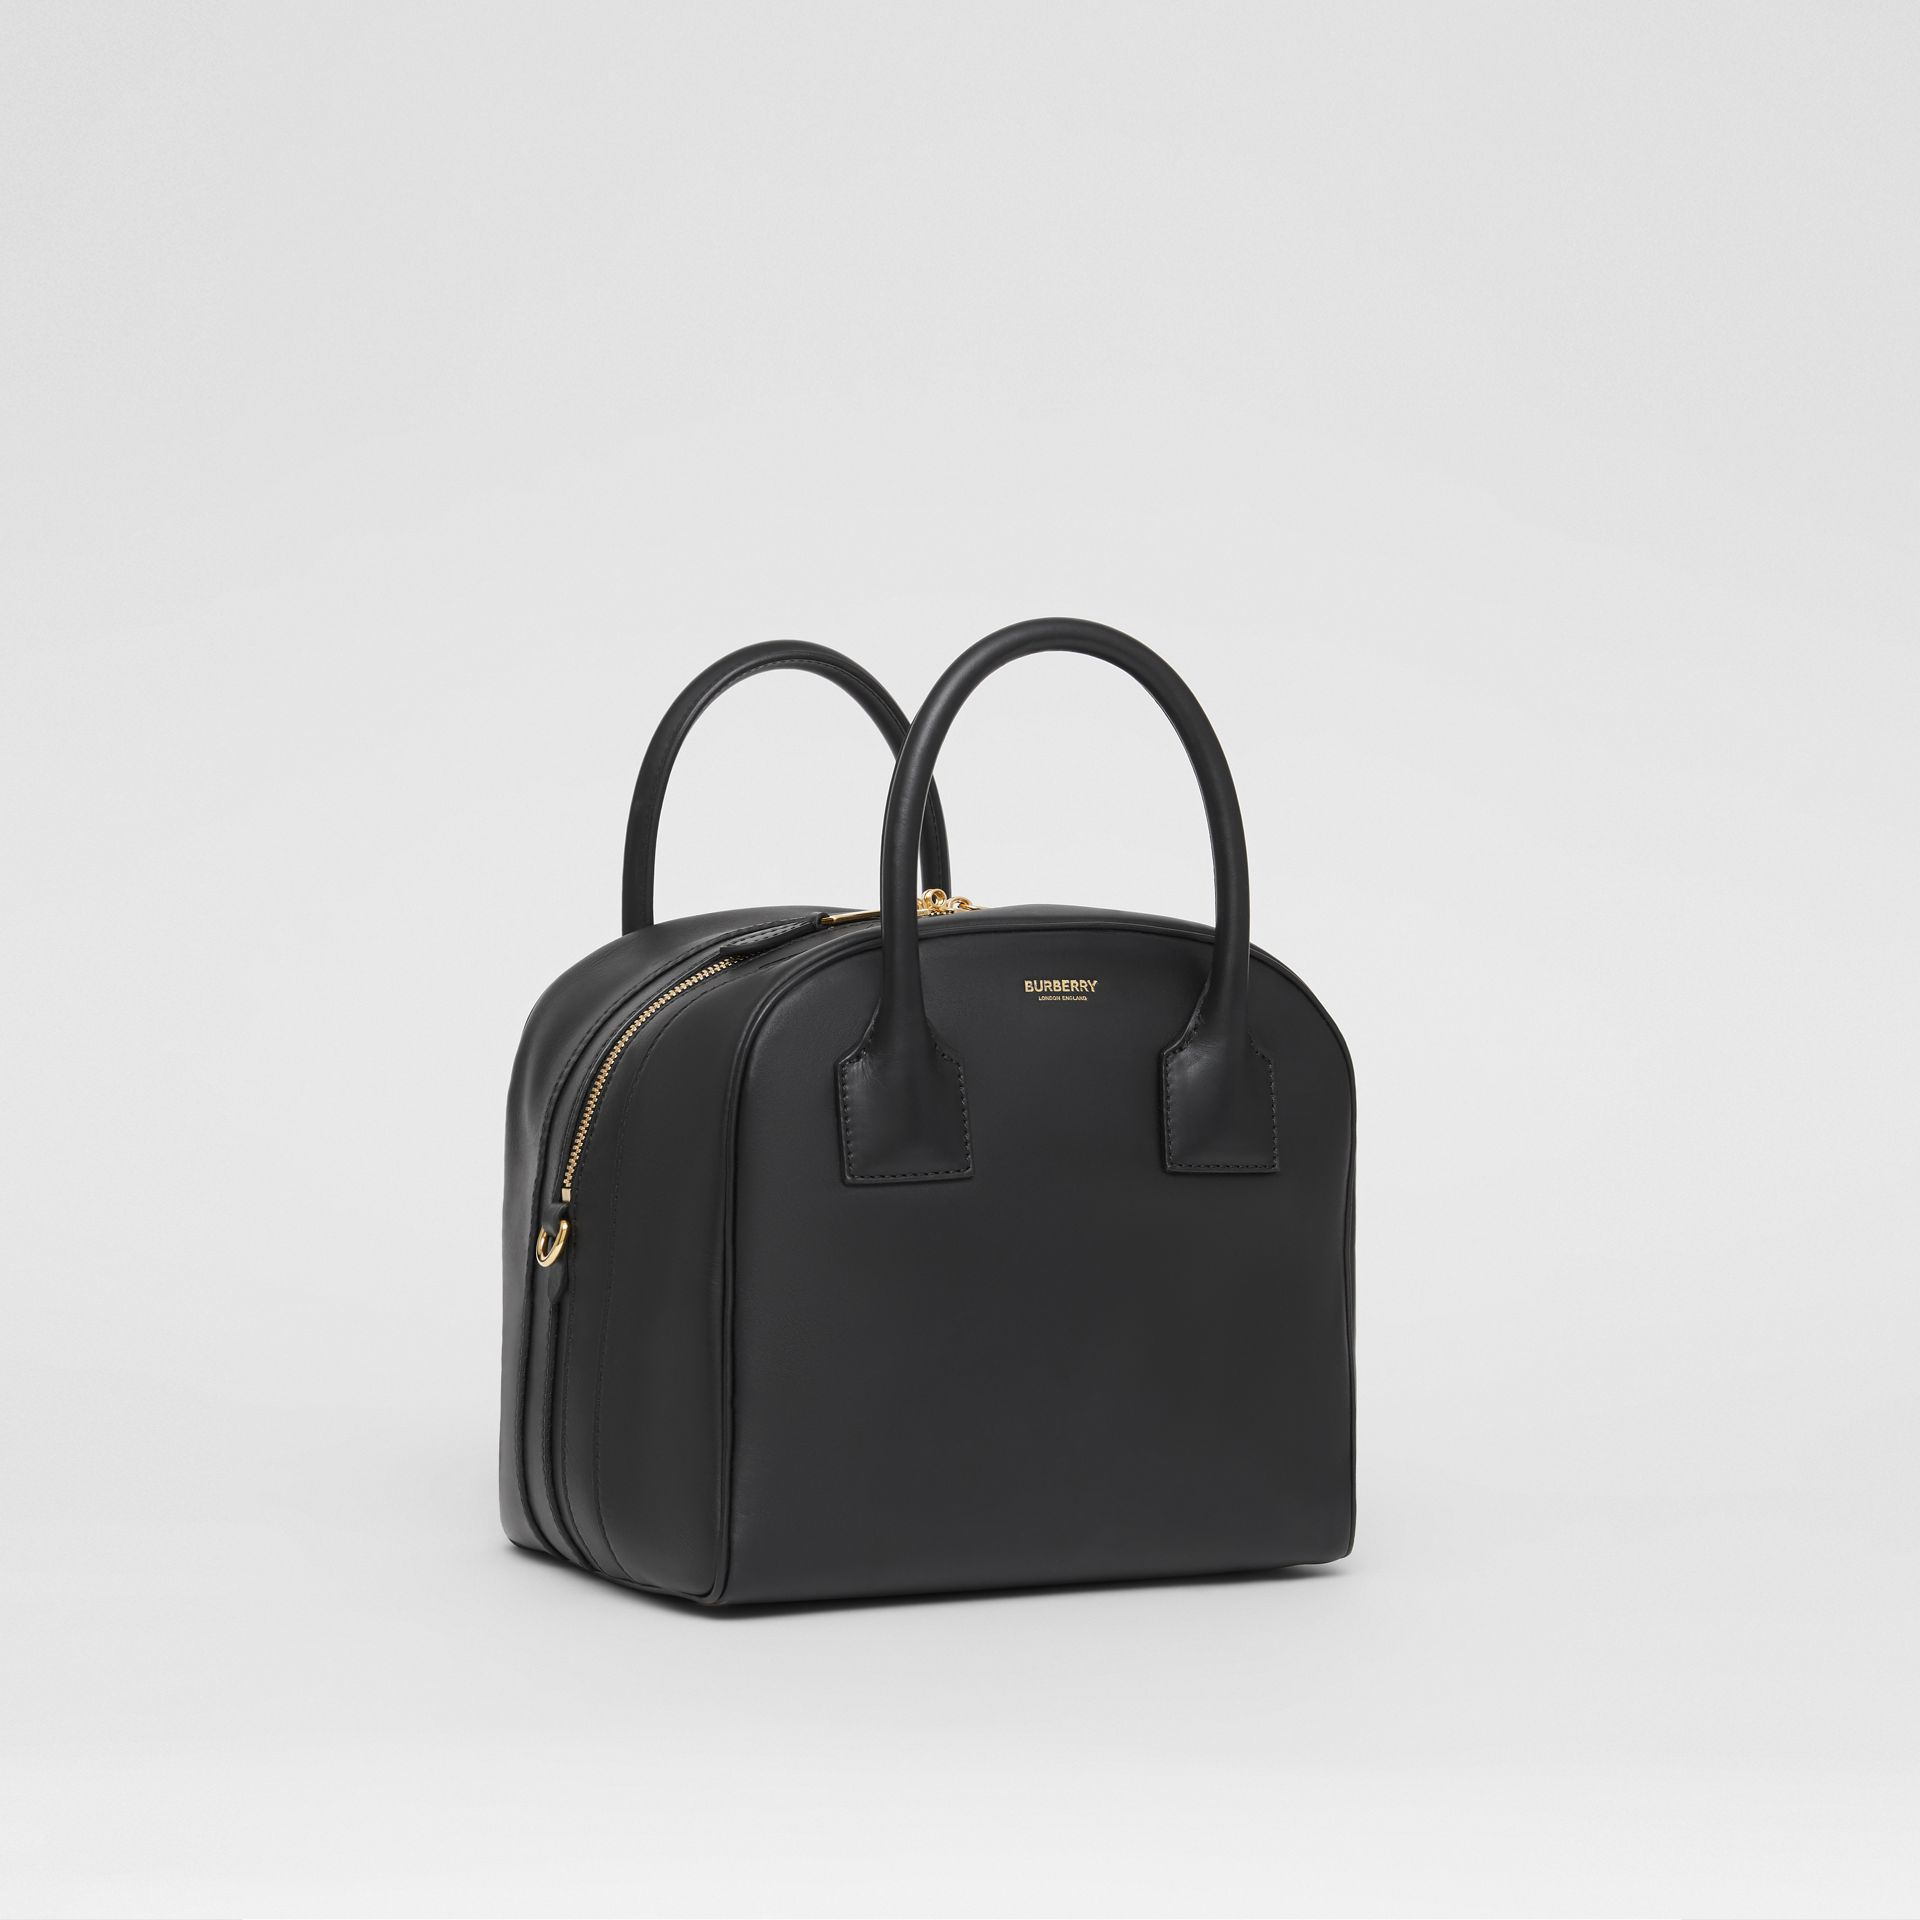 Small Leather Cube Bag in Black - Women | Burberry Australia - gallery image 6